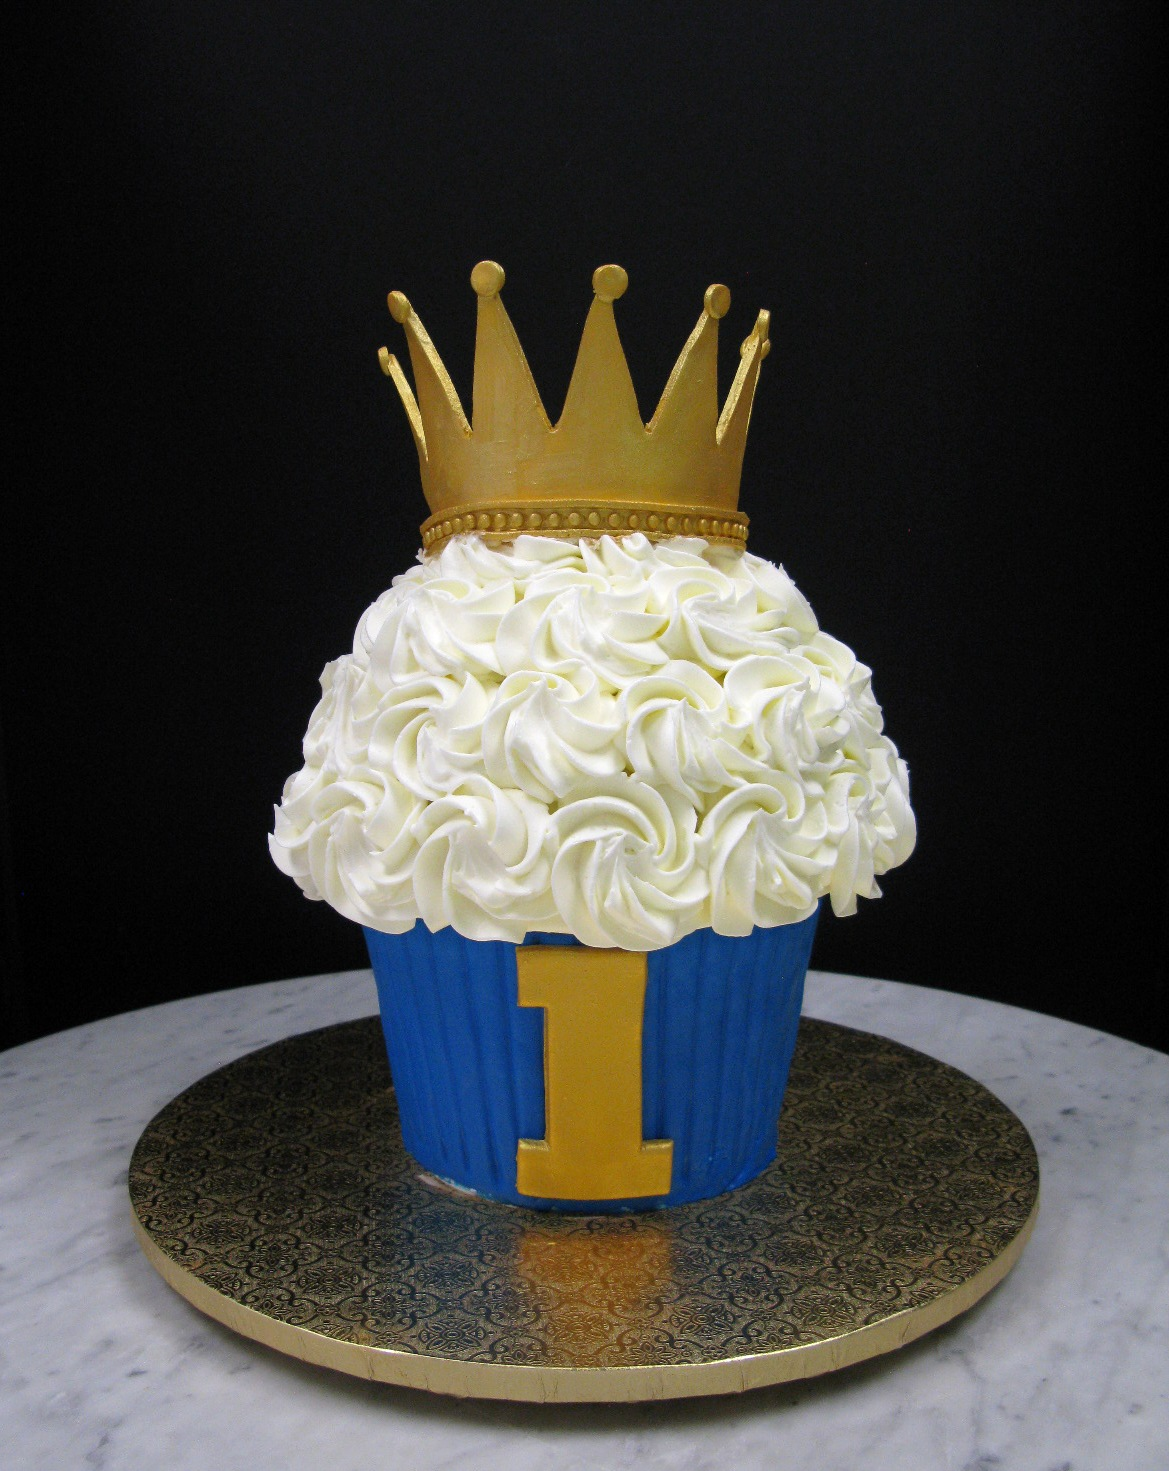 Crown Shaped Cupcake Cake